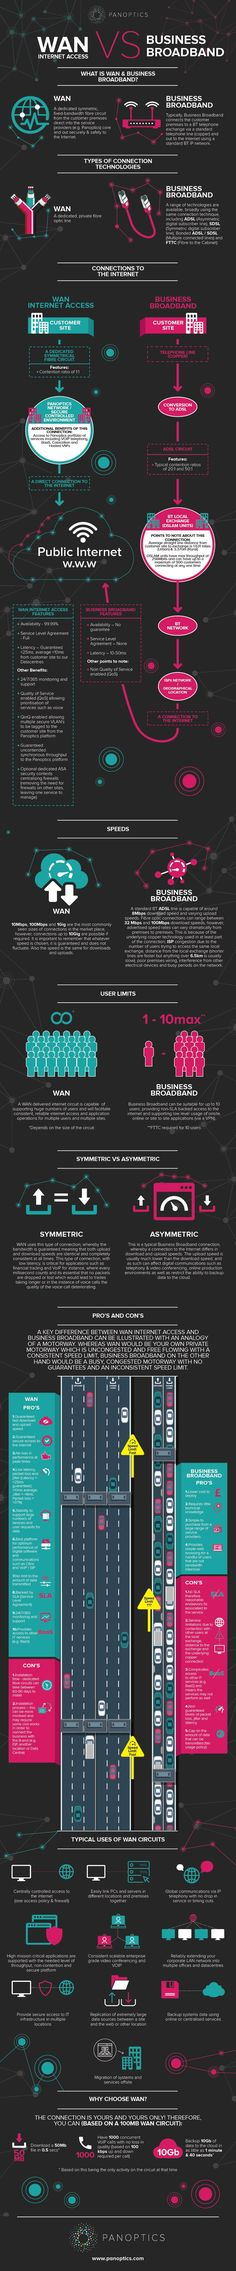 This WAN Internet Access VS Business Broadband' infographic by Panoptics illustrates the underlying differences between the two connections, clearly drawing comparisons on what is and what is not possible with each. It also identifies how the connection to the internet actually works and what this means for usability and cloud services access.